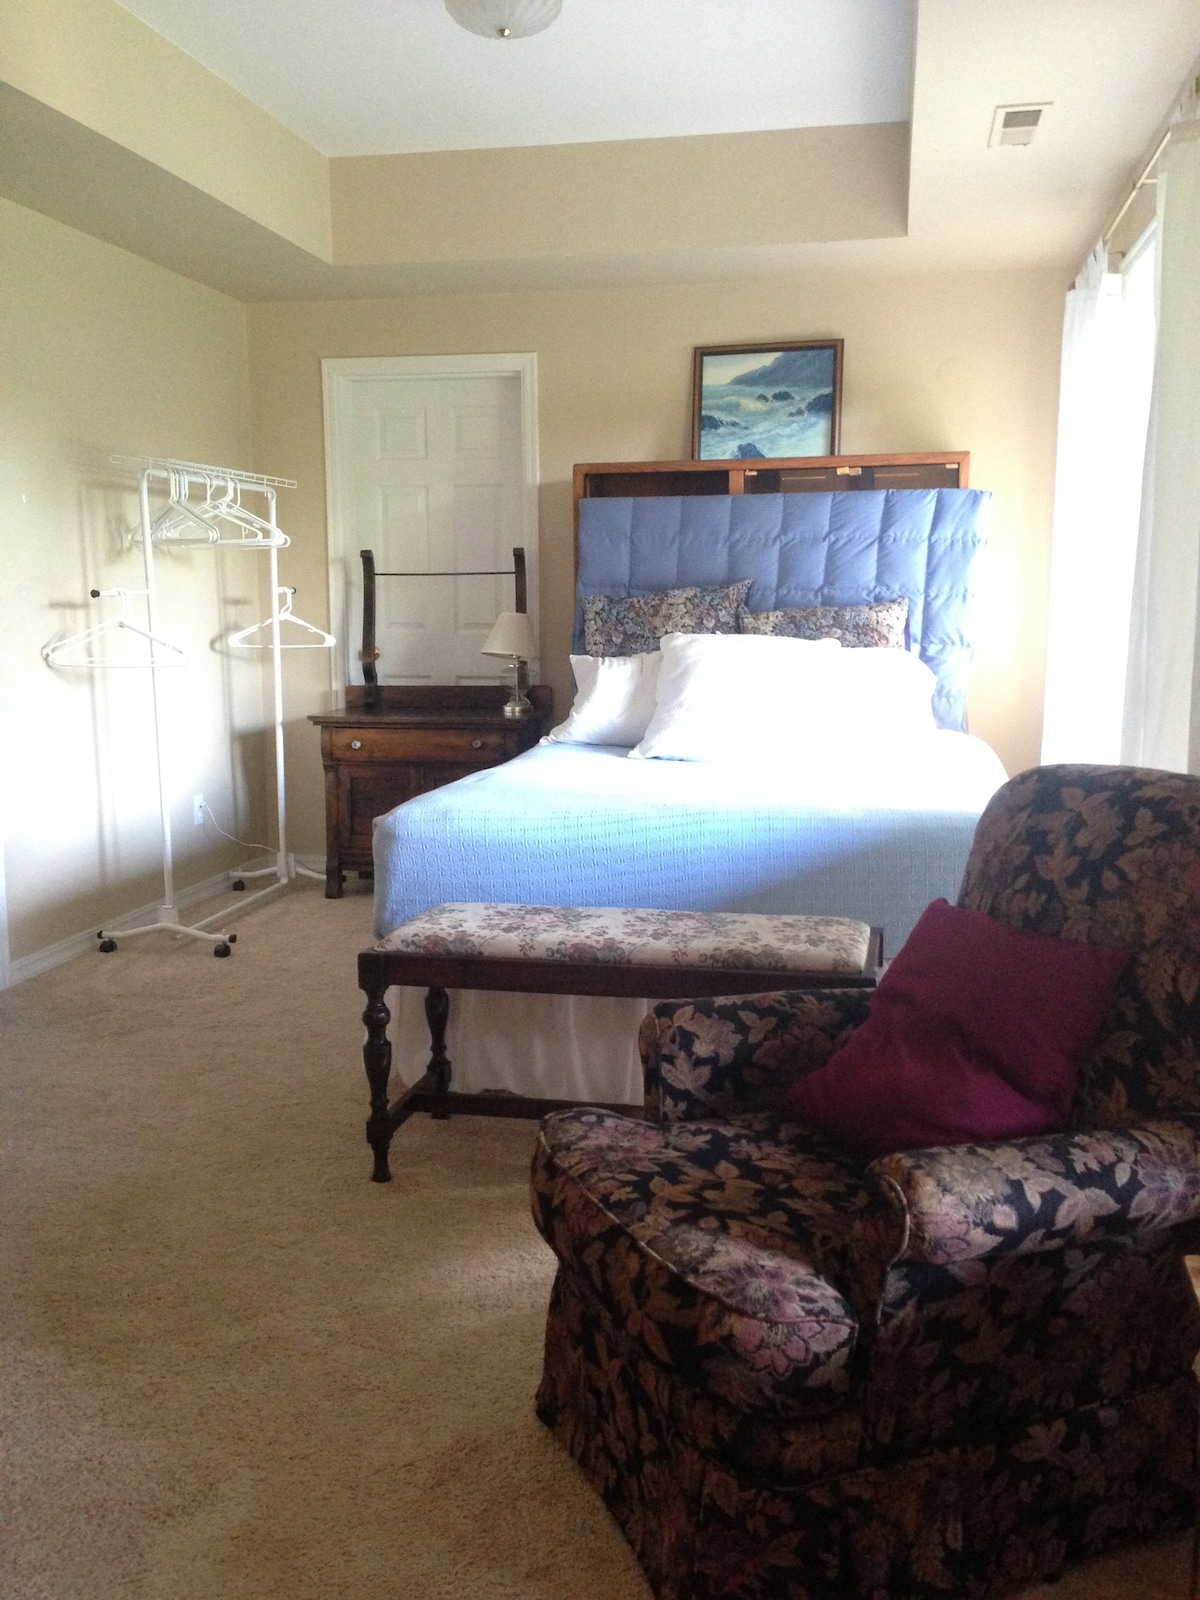 Queen bed with wardrobe rack, dresser and luggage stool.